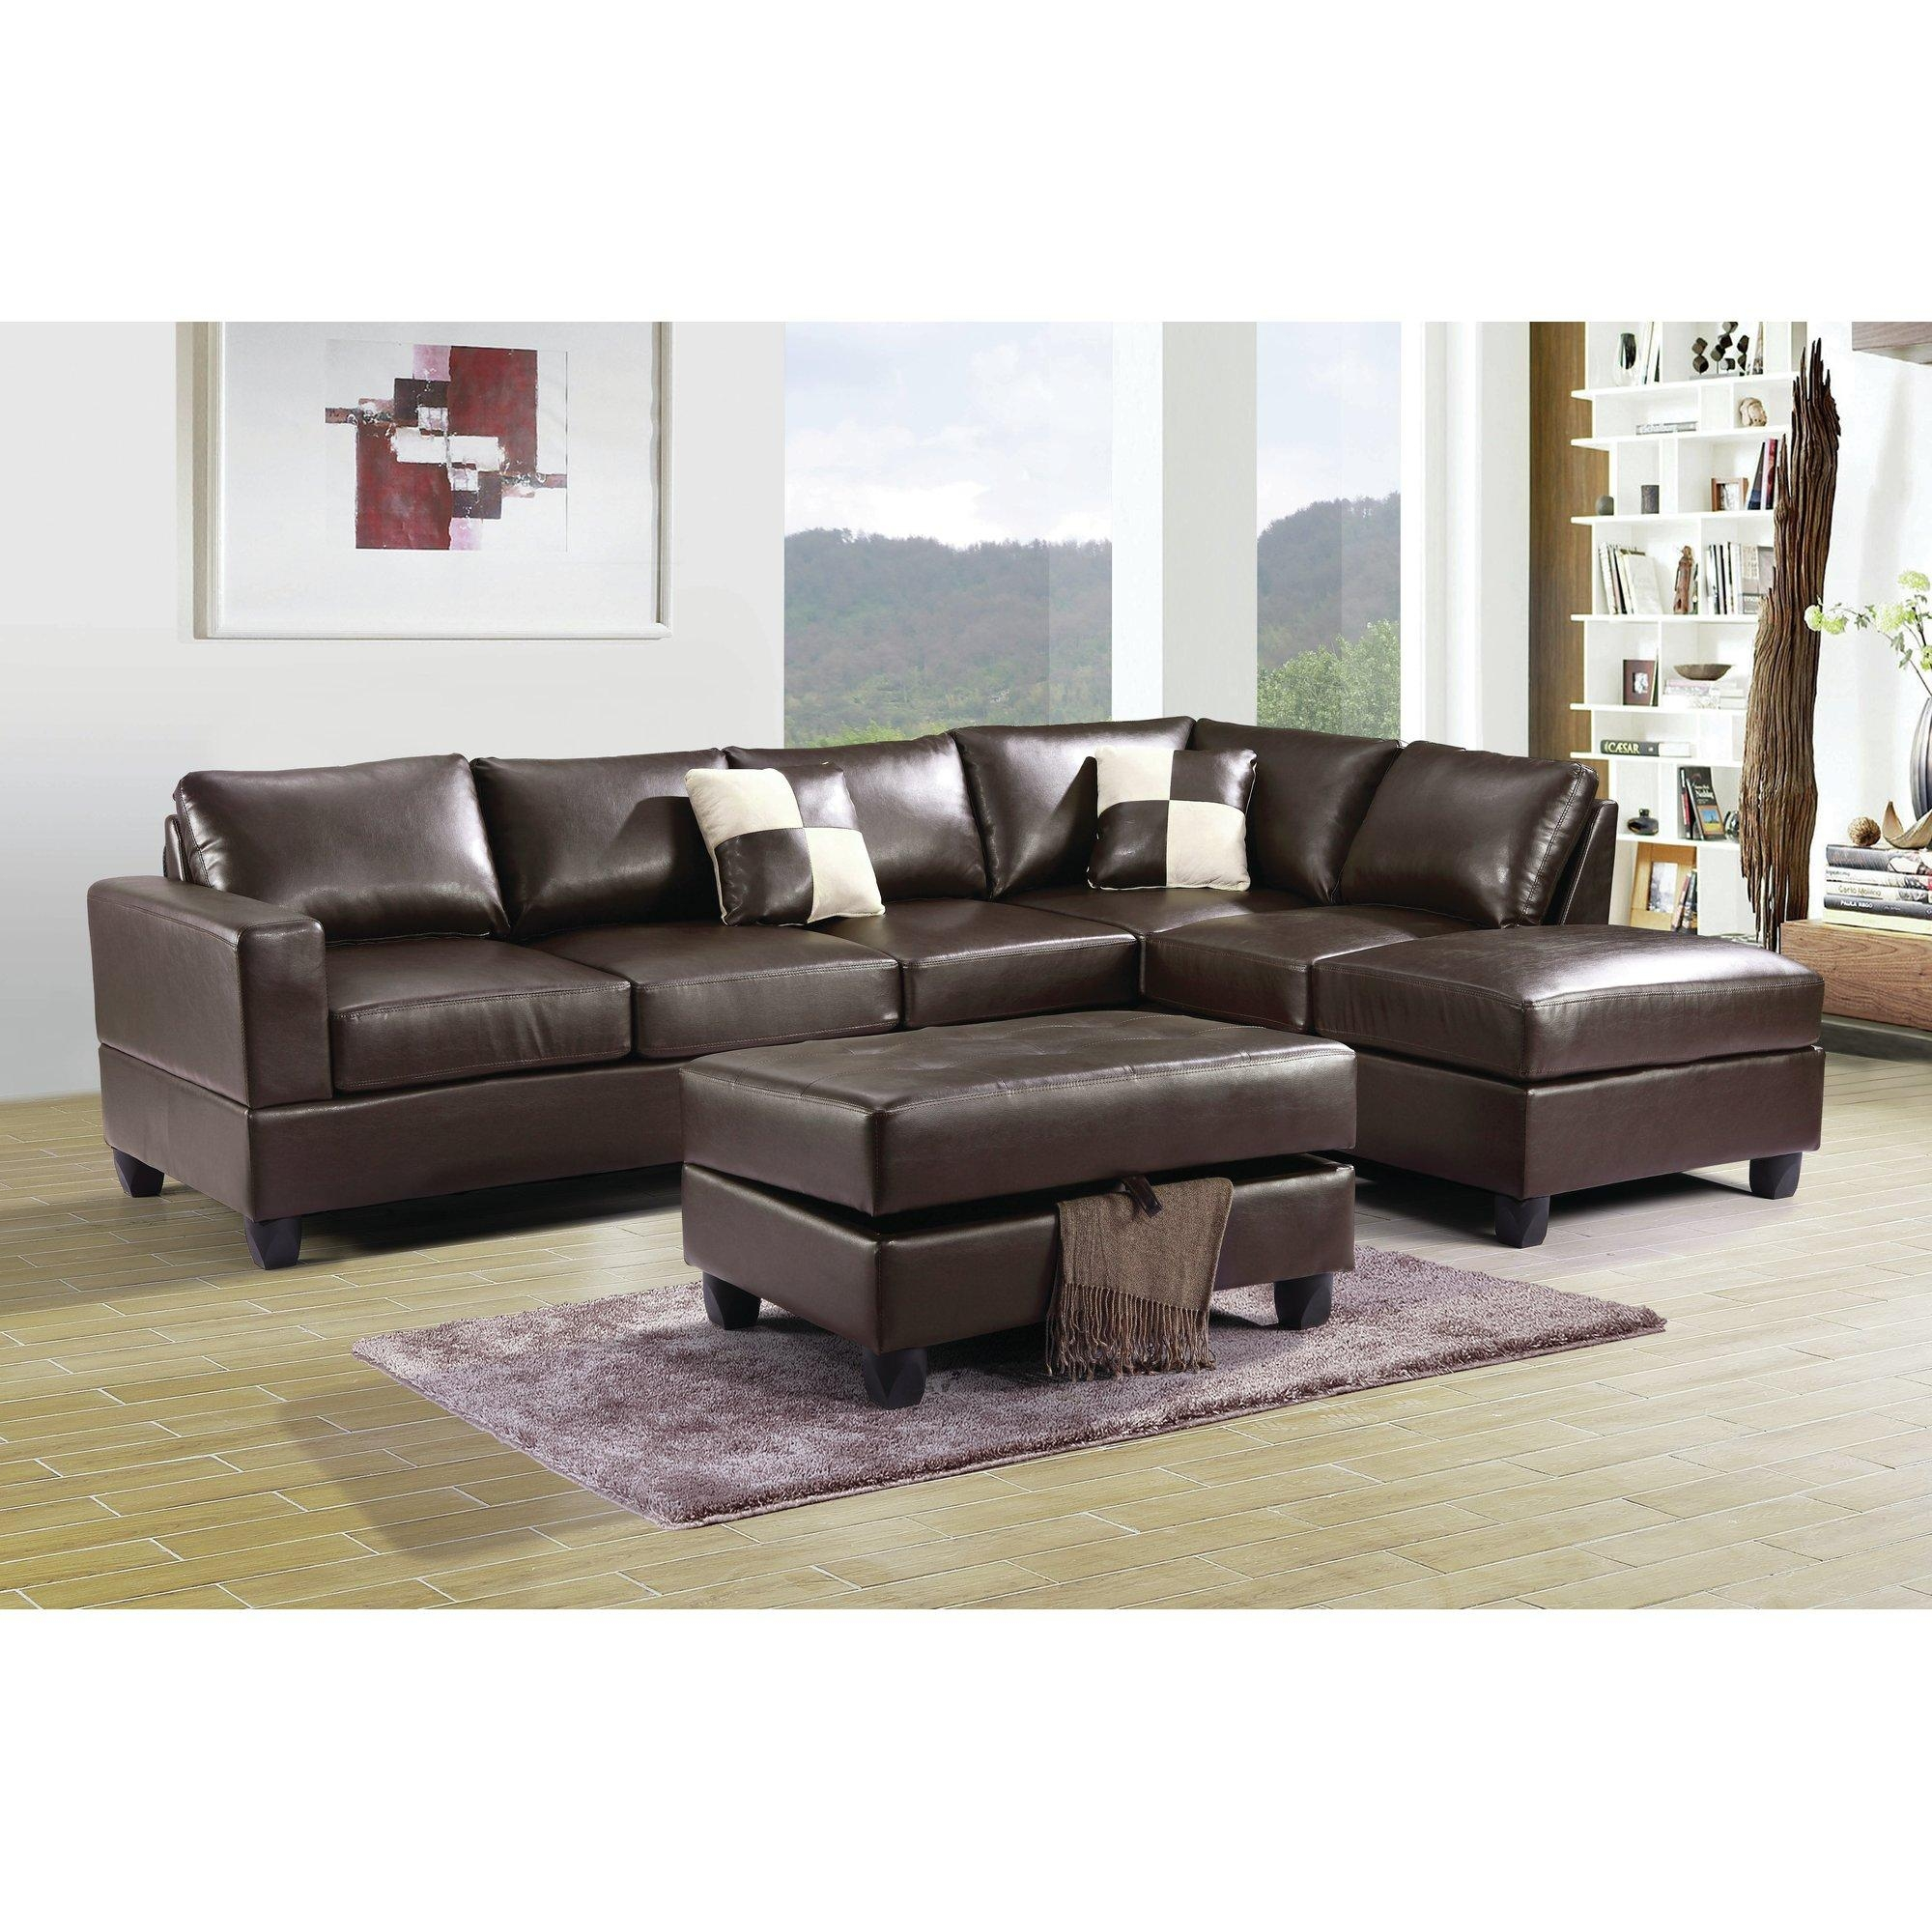 tufted sofa set cheap leather sofas in south africa 20 photos sectional chaise ideas